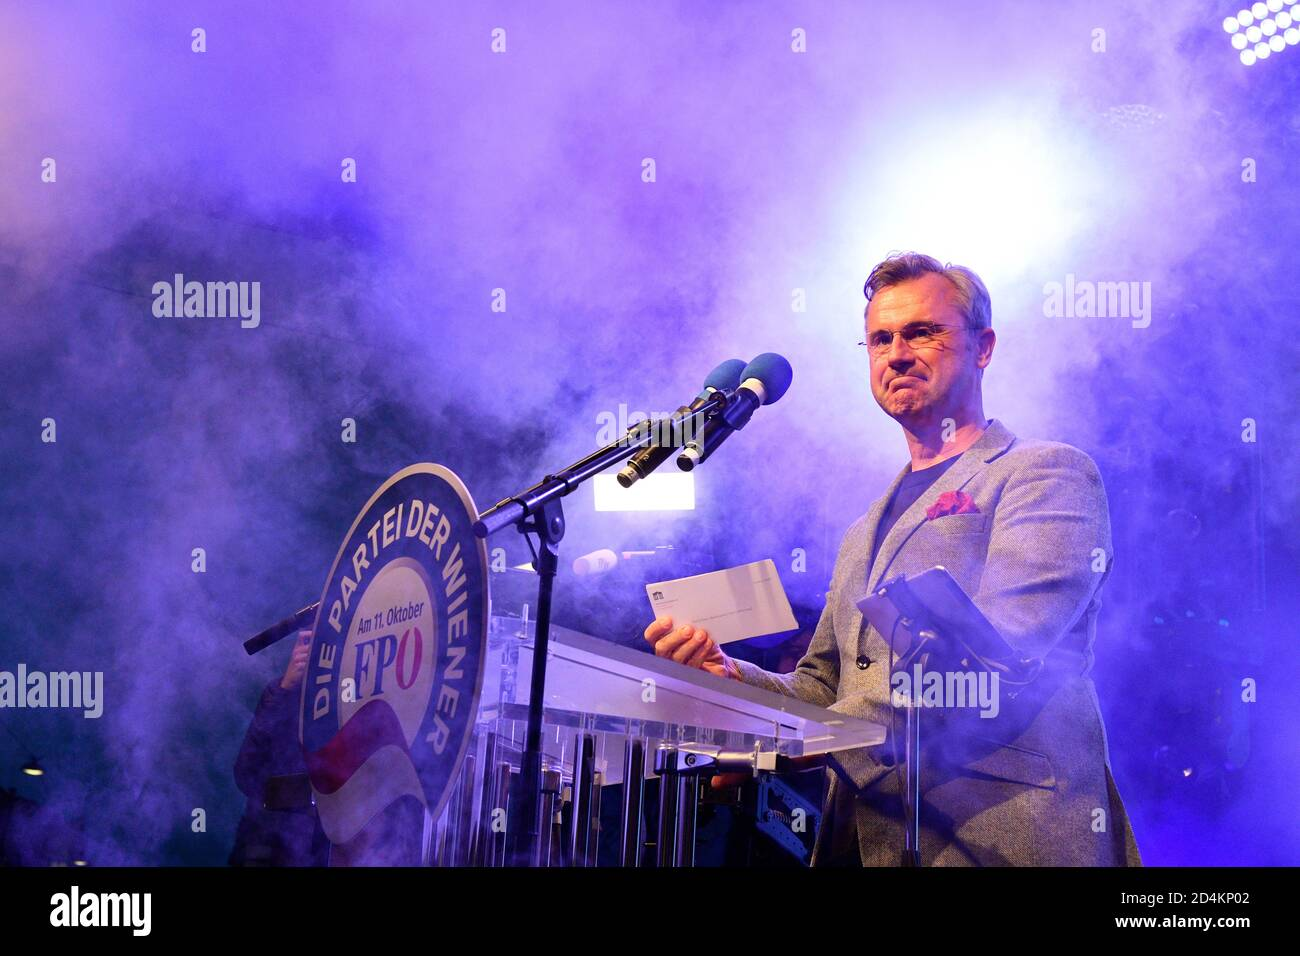 Vienna, Austria. 09th Oct, 2020. Final election campaign of the FPÖ (Freedom Party Austria) for the mayoral electio ns on October 11, 2020. Picture shows Federal Party Chairman of the FPÖ, Norbert Hofer. Credit: Franz Perc / Alamy Live News Stock Photo